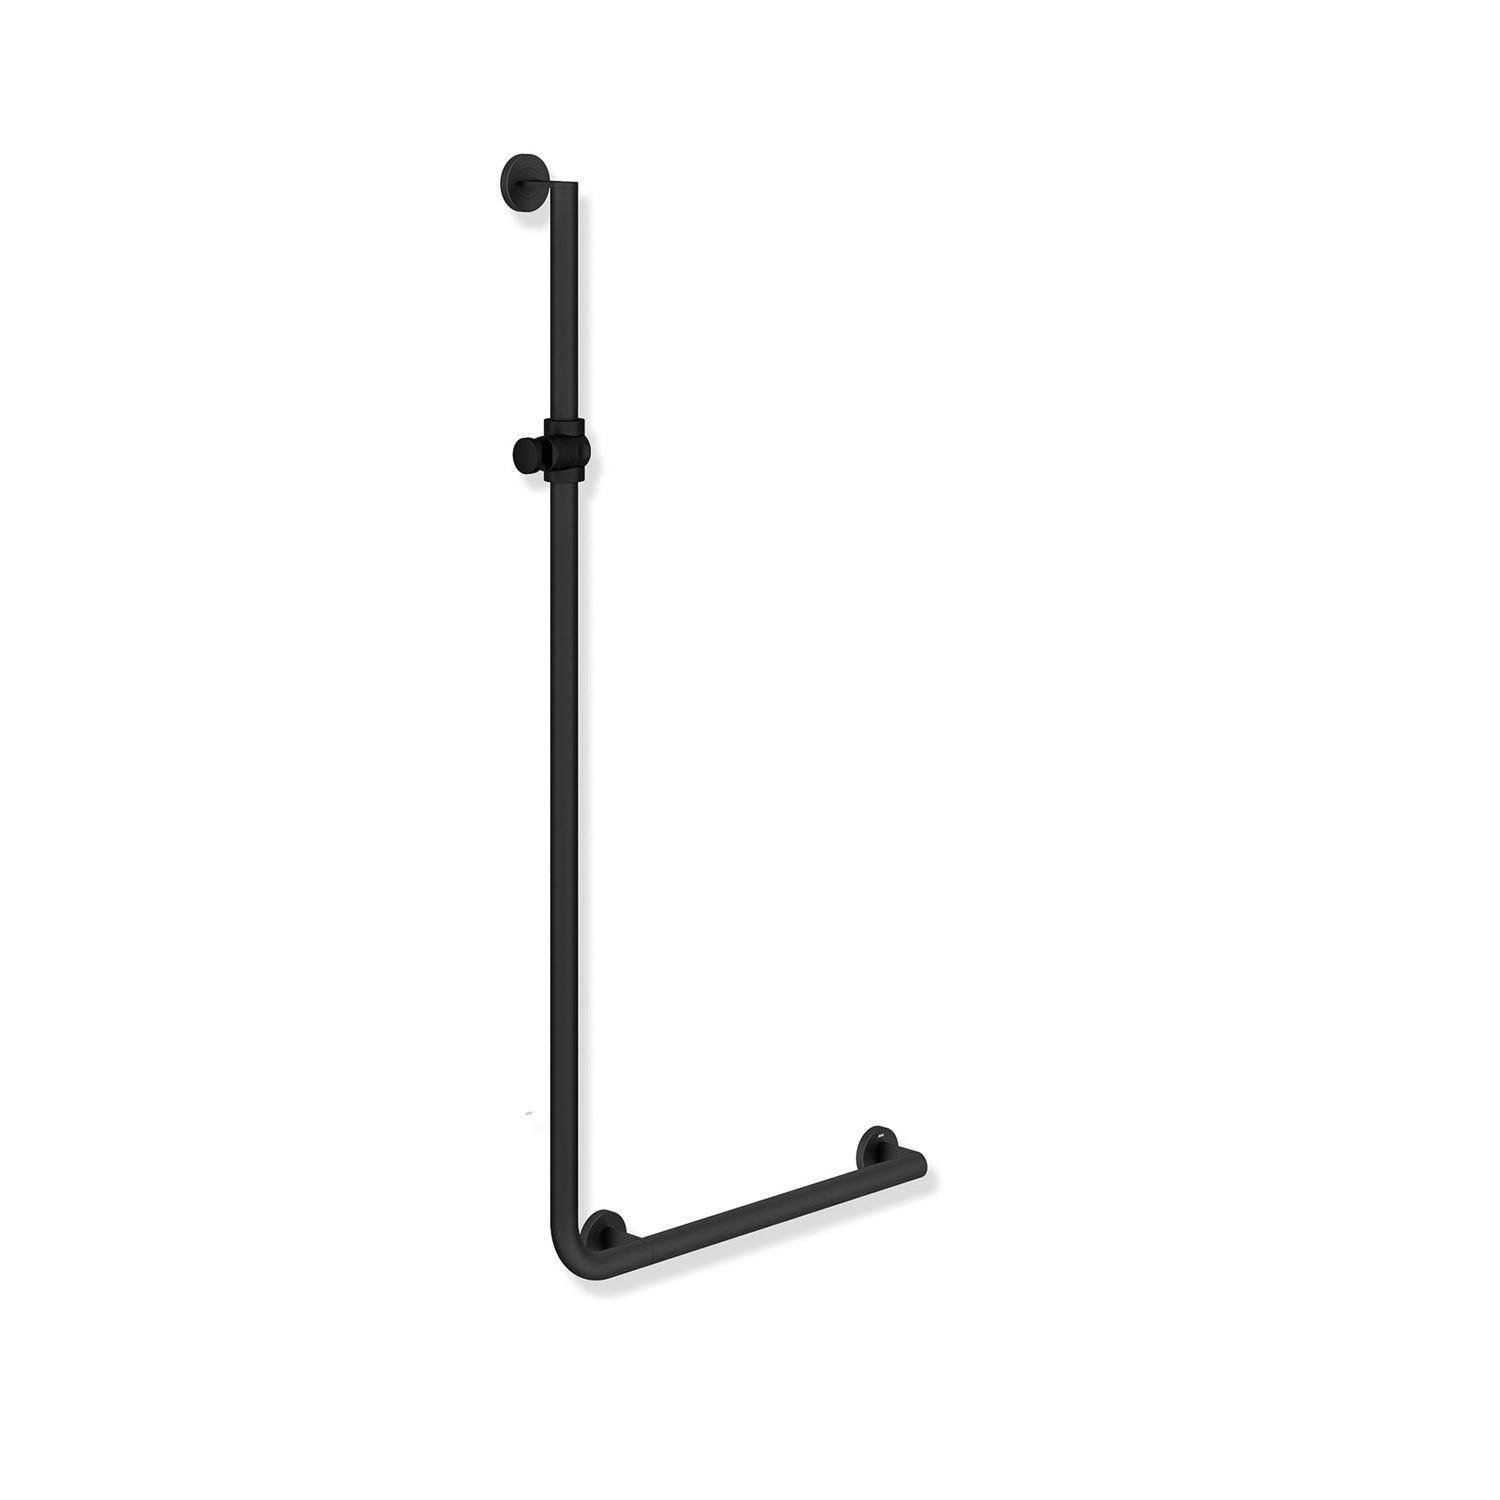 1250x600mm Right Handed Freestyle Supportive L Shaped Shower Rail with a matt black finish on a white background